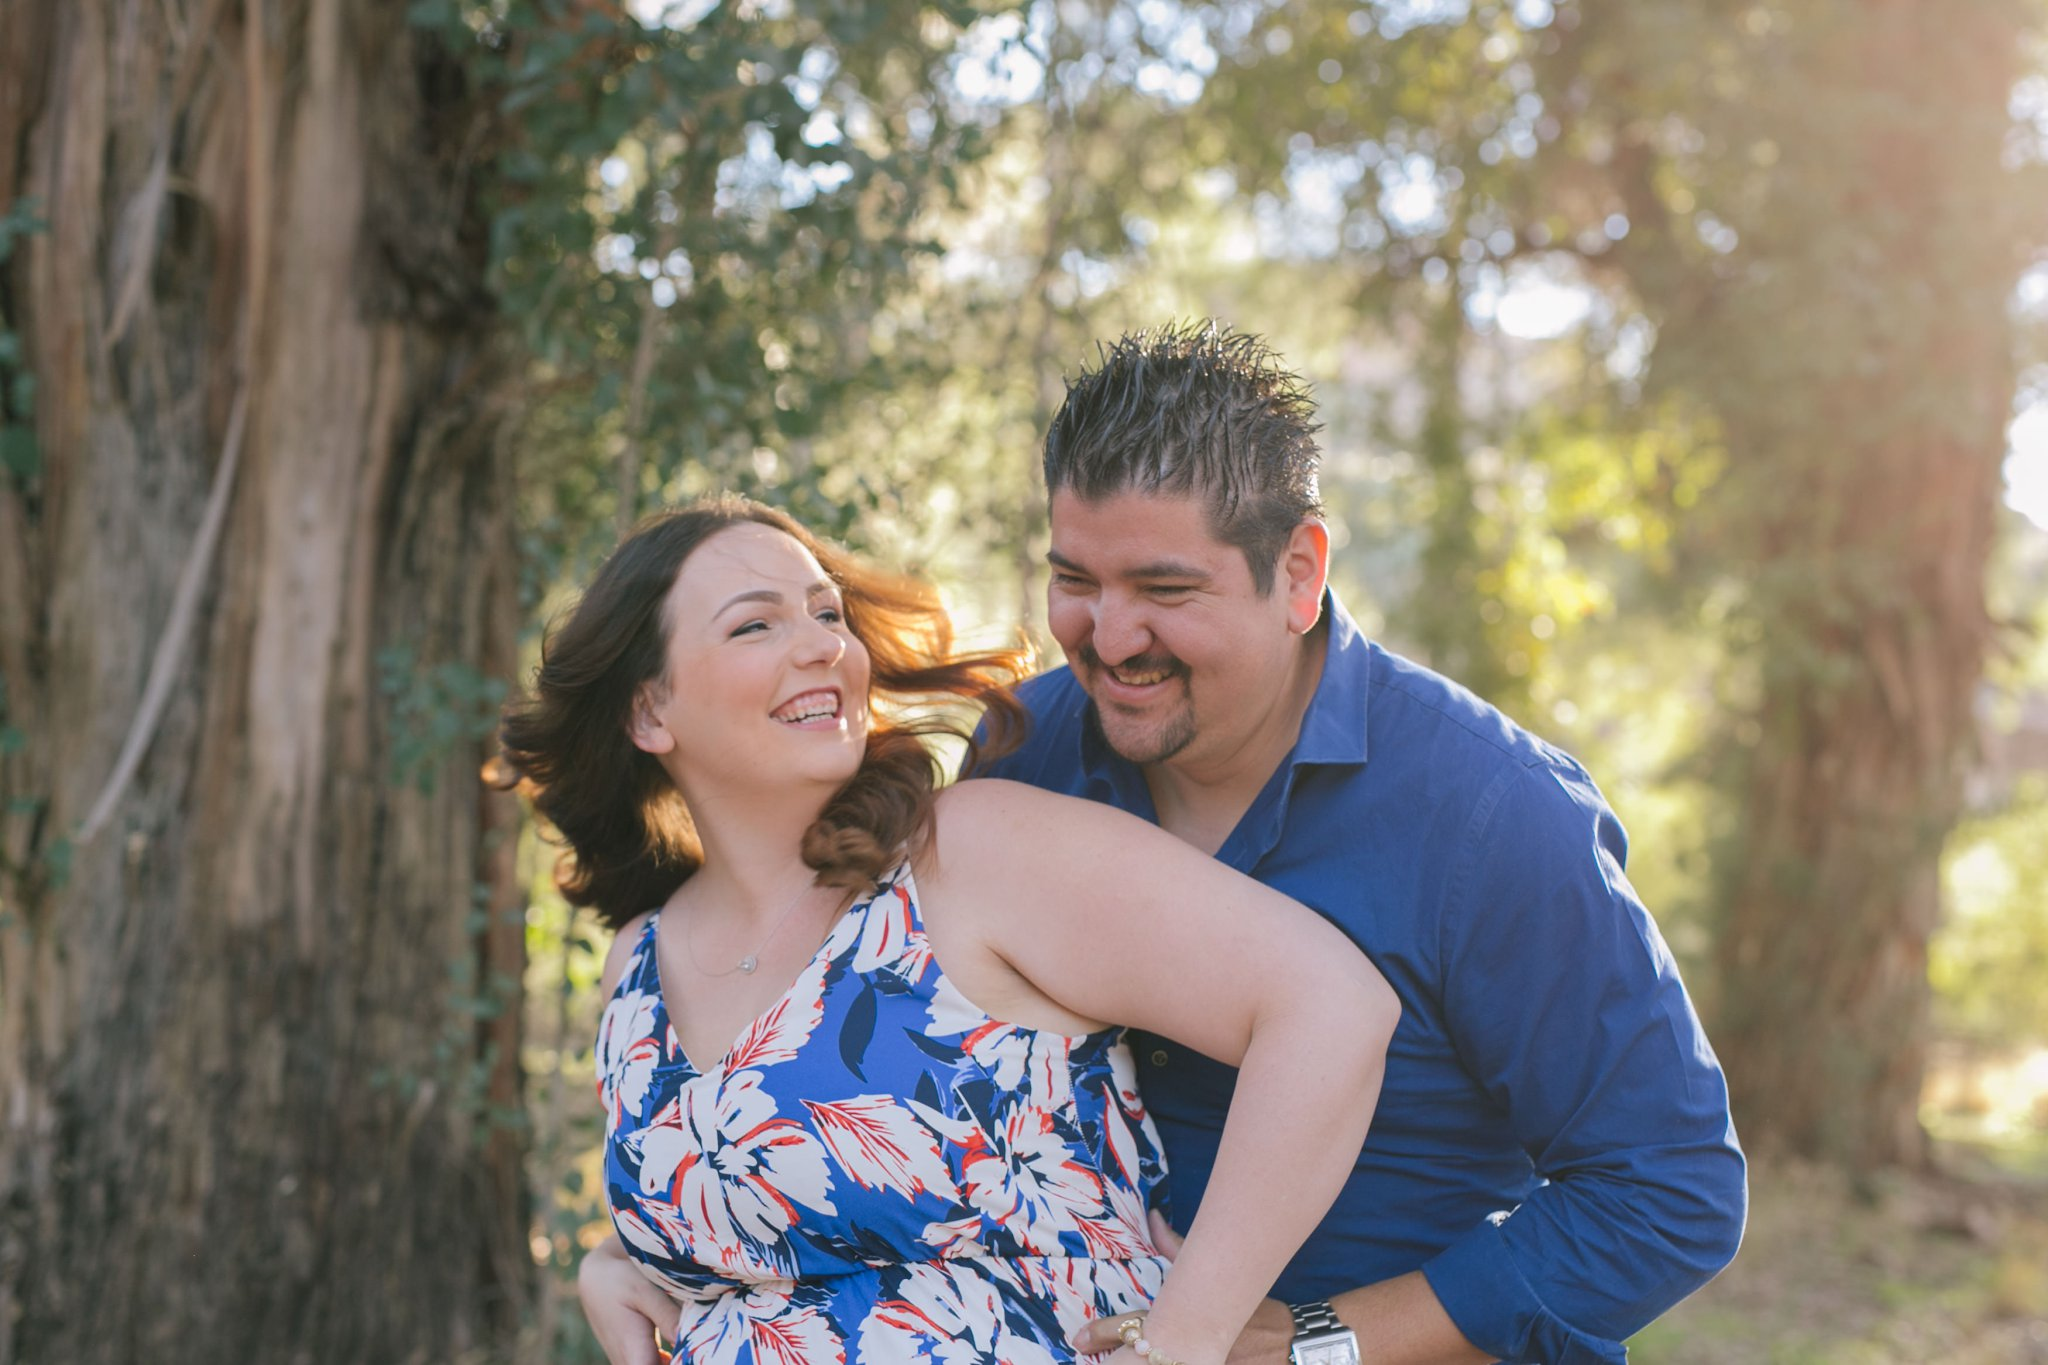 natural candid fun outdoor engagement photos in Boyce Thompson Arboretum Arizona